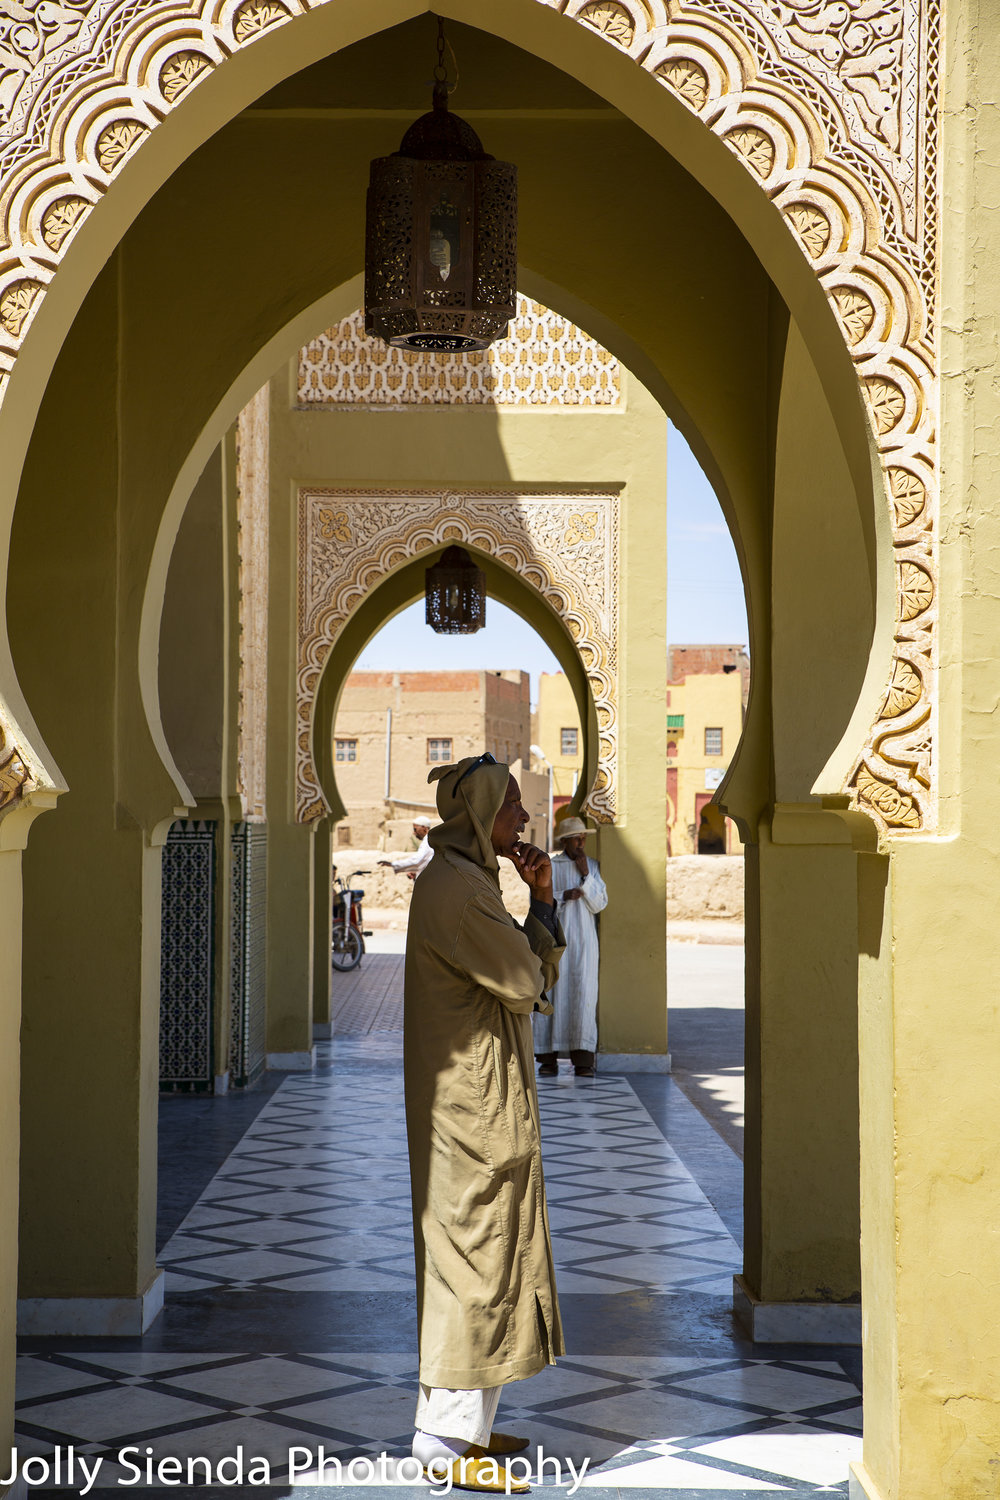 Man in a  djellaba stands in an Islamic archway